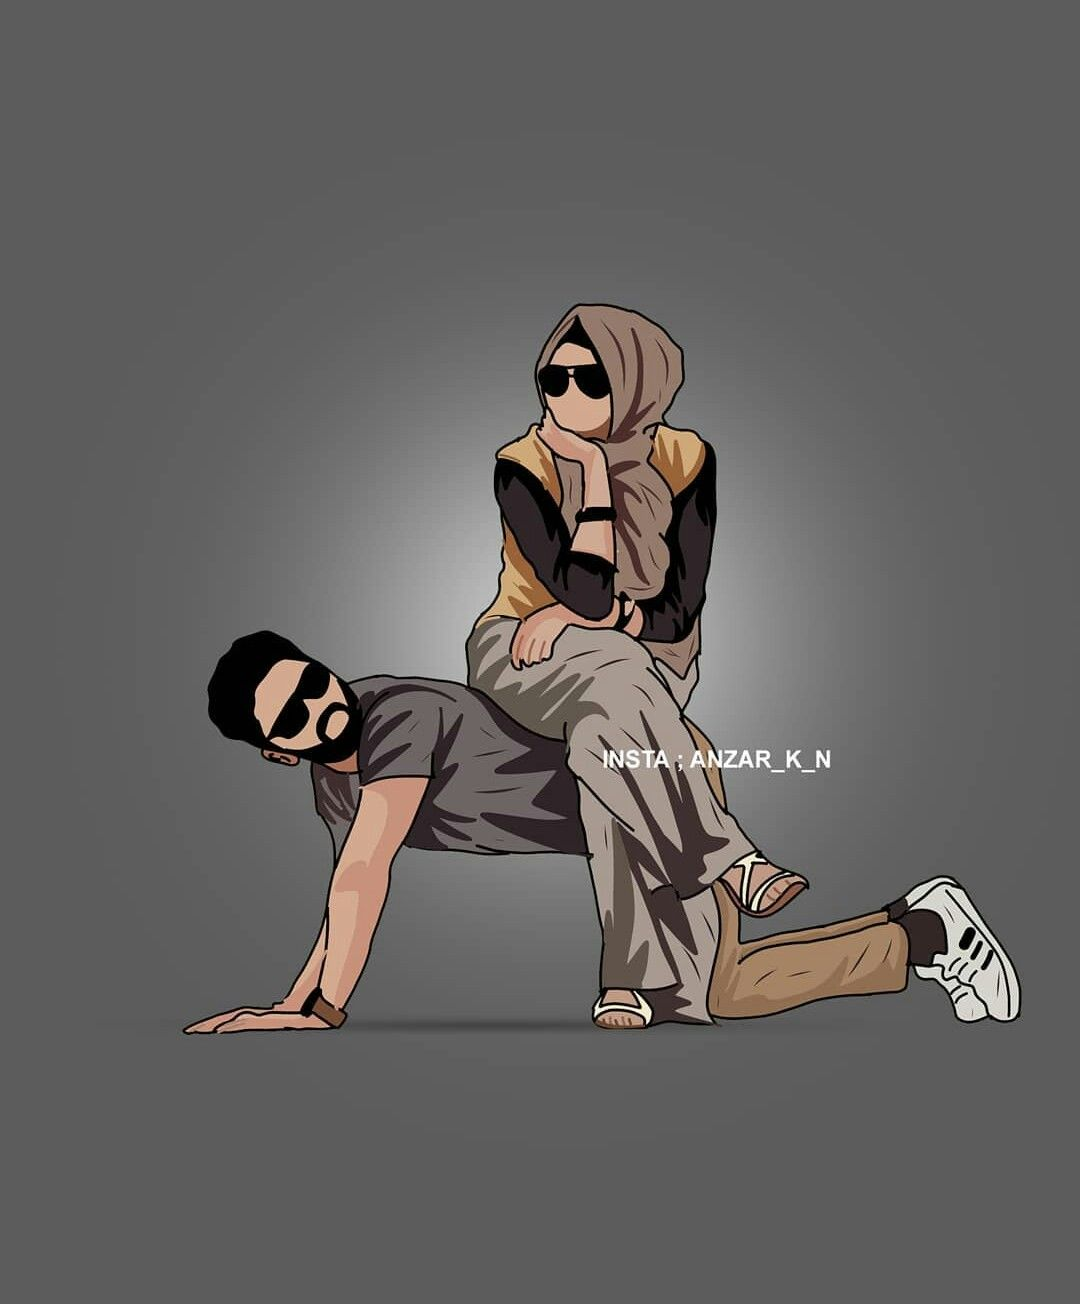 Pin By Miffu On Muslim Couple Art Cute Couple Cartoon Cute Love Cartoons Cute Couple Art